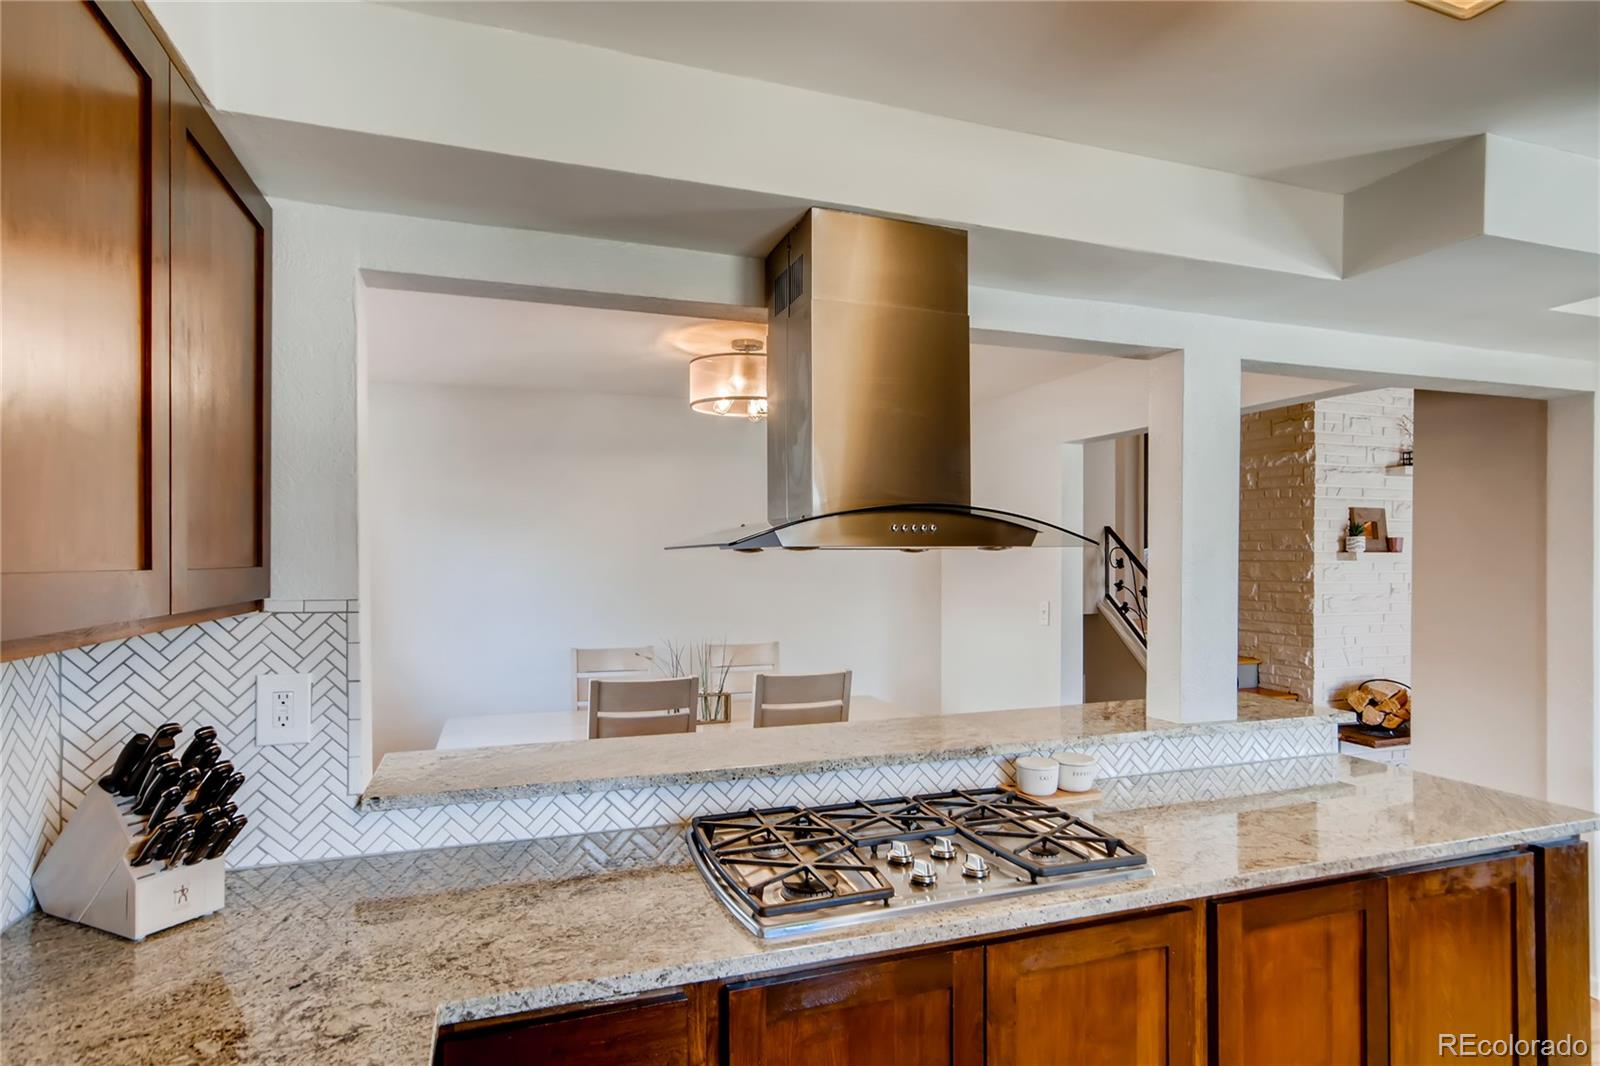 MLS# 9197299 - 12 - 10511 W 22nd Place, Lakewood, CO 80215